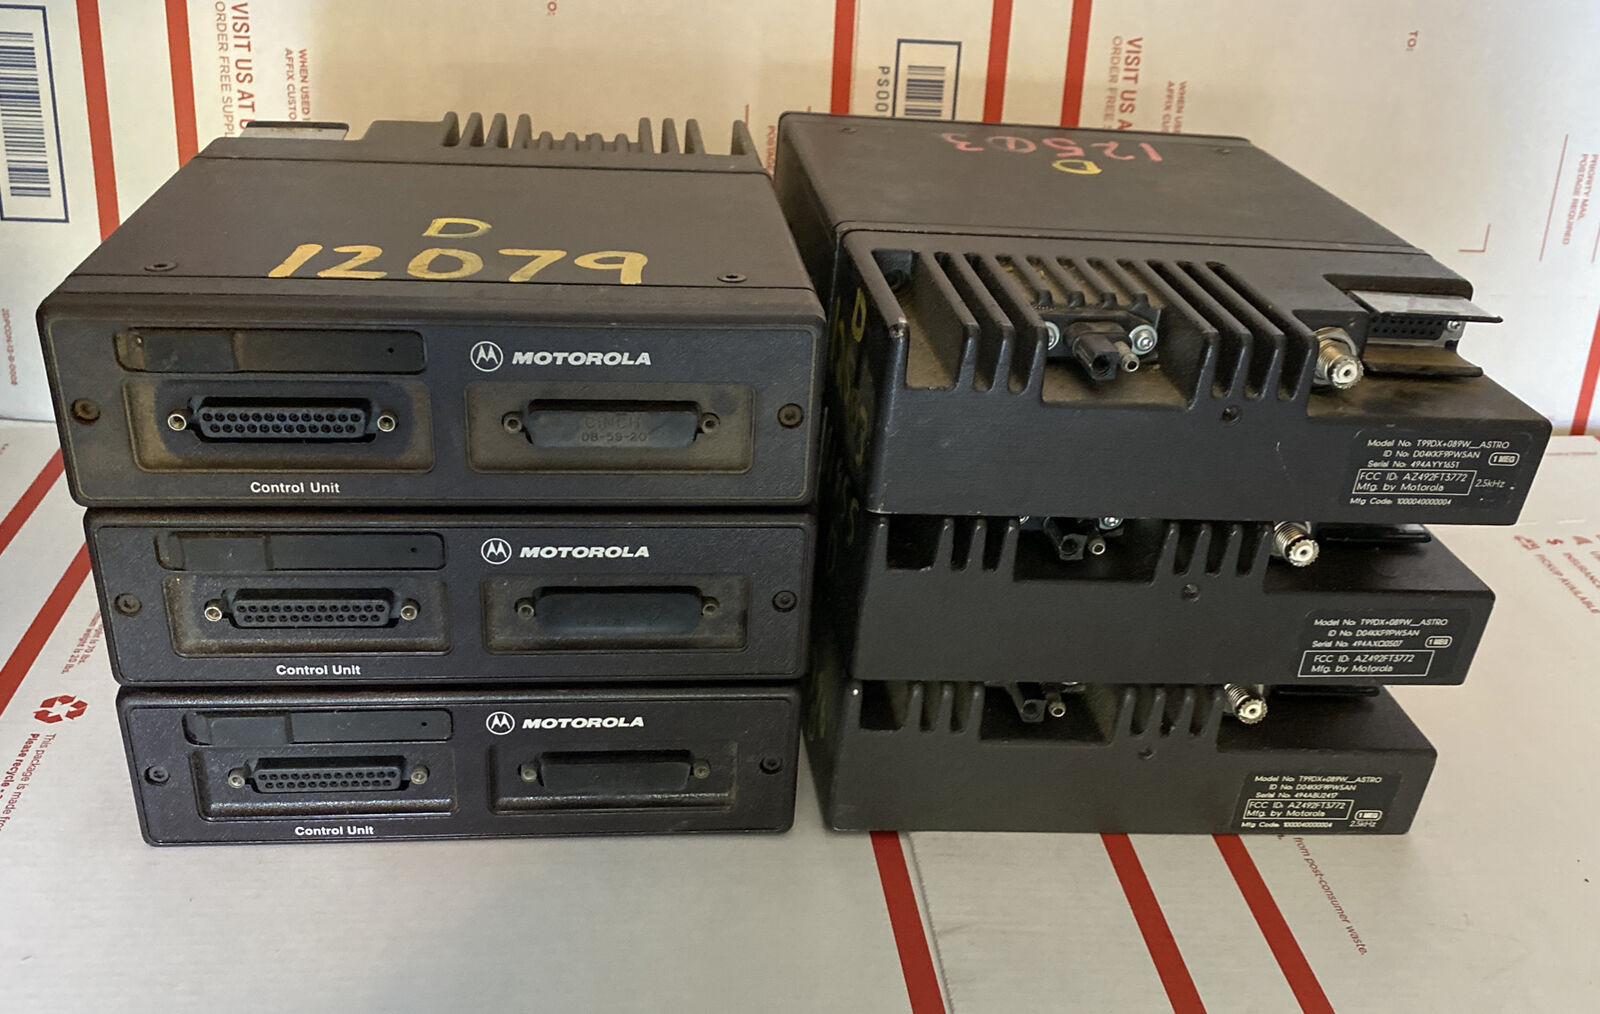 Lot Of 6 Motorola Astro Spectra VHF W5 Remote Mount Drawer Unit IMBE P25 Digital. Buy it now for 300.00